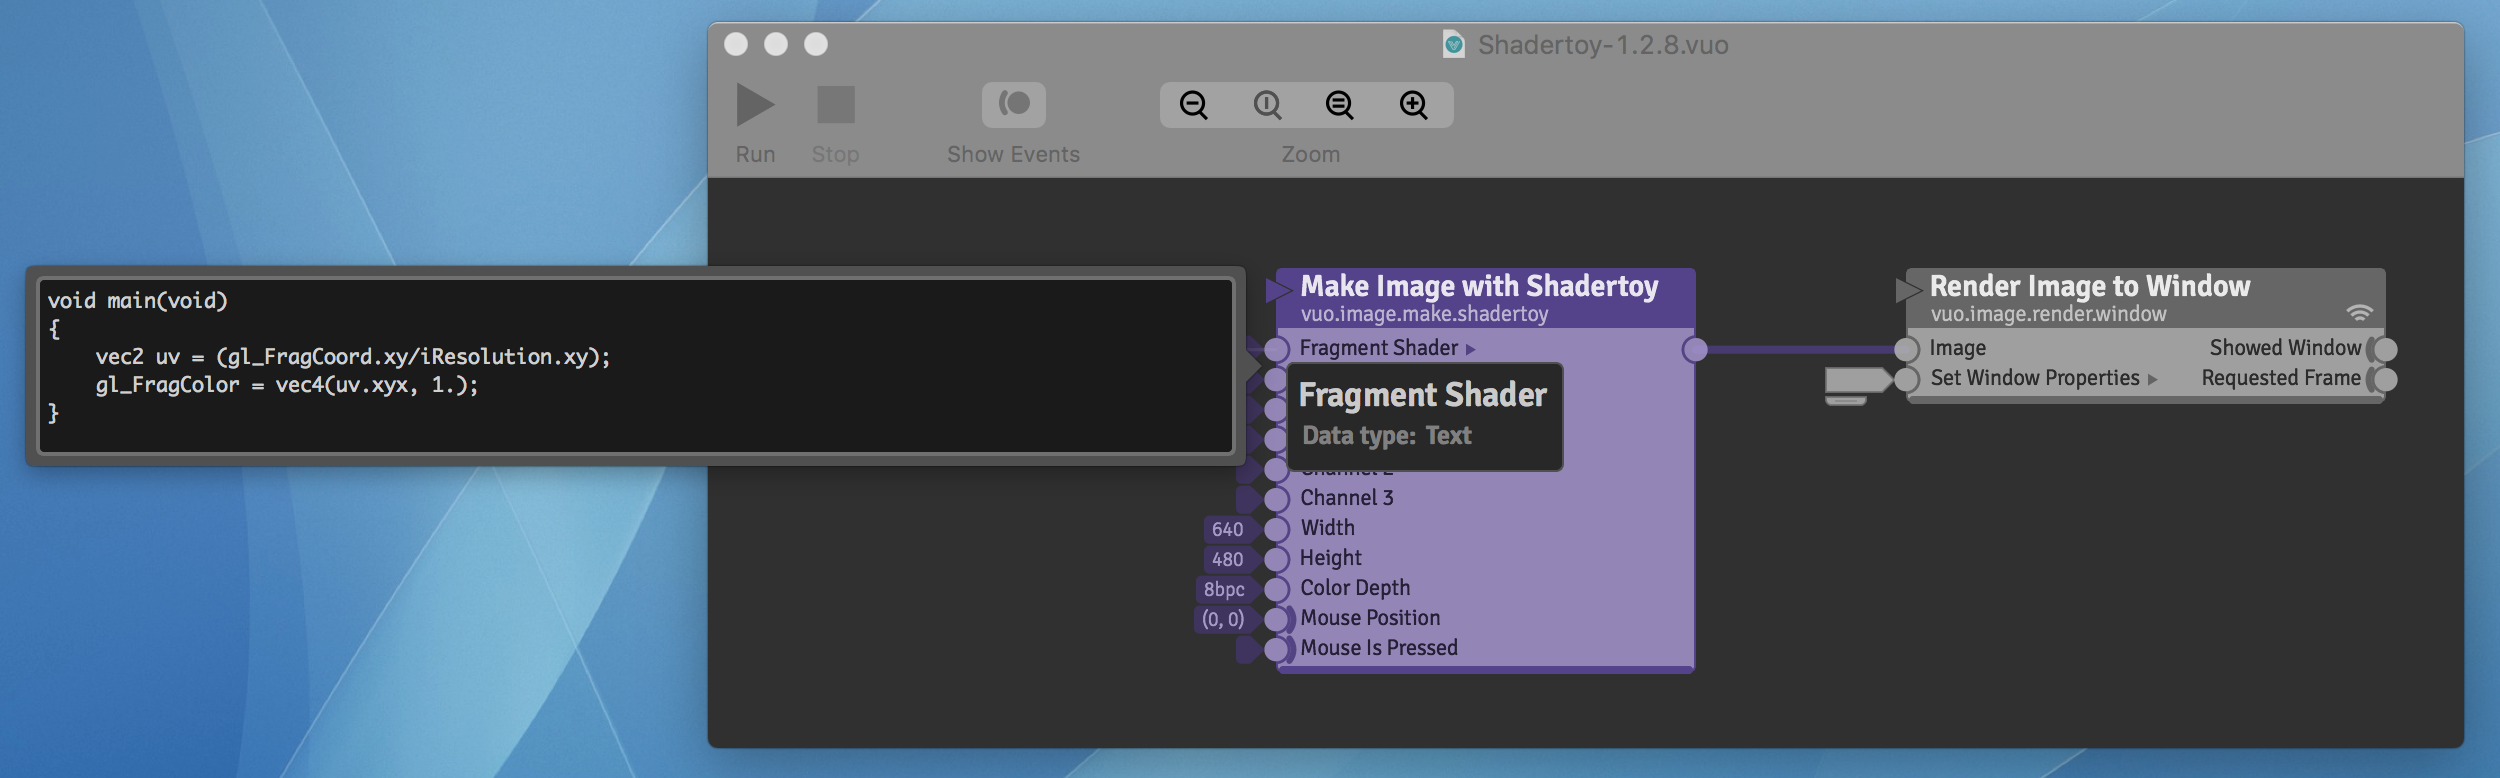 Make Image with Shadertoy node with old syntax in input editor